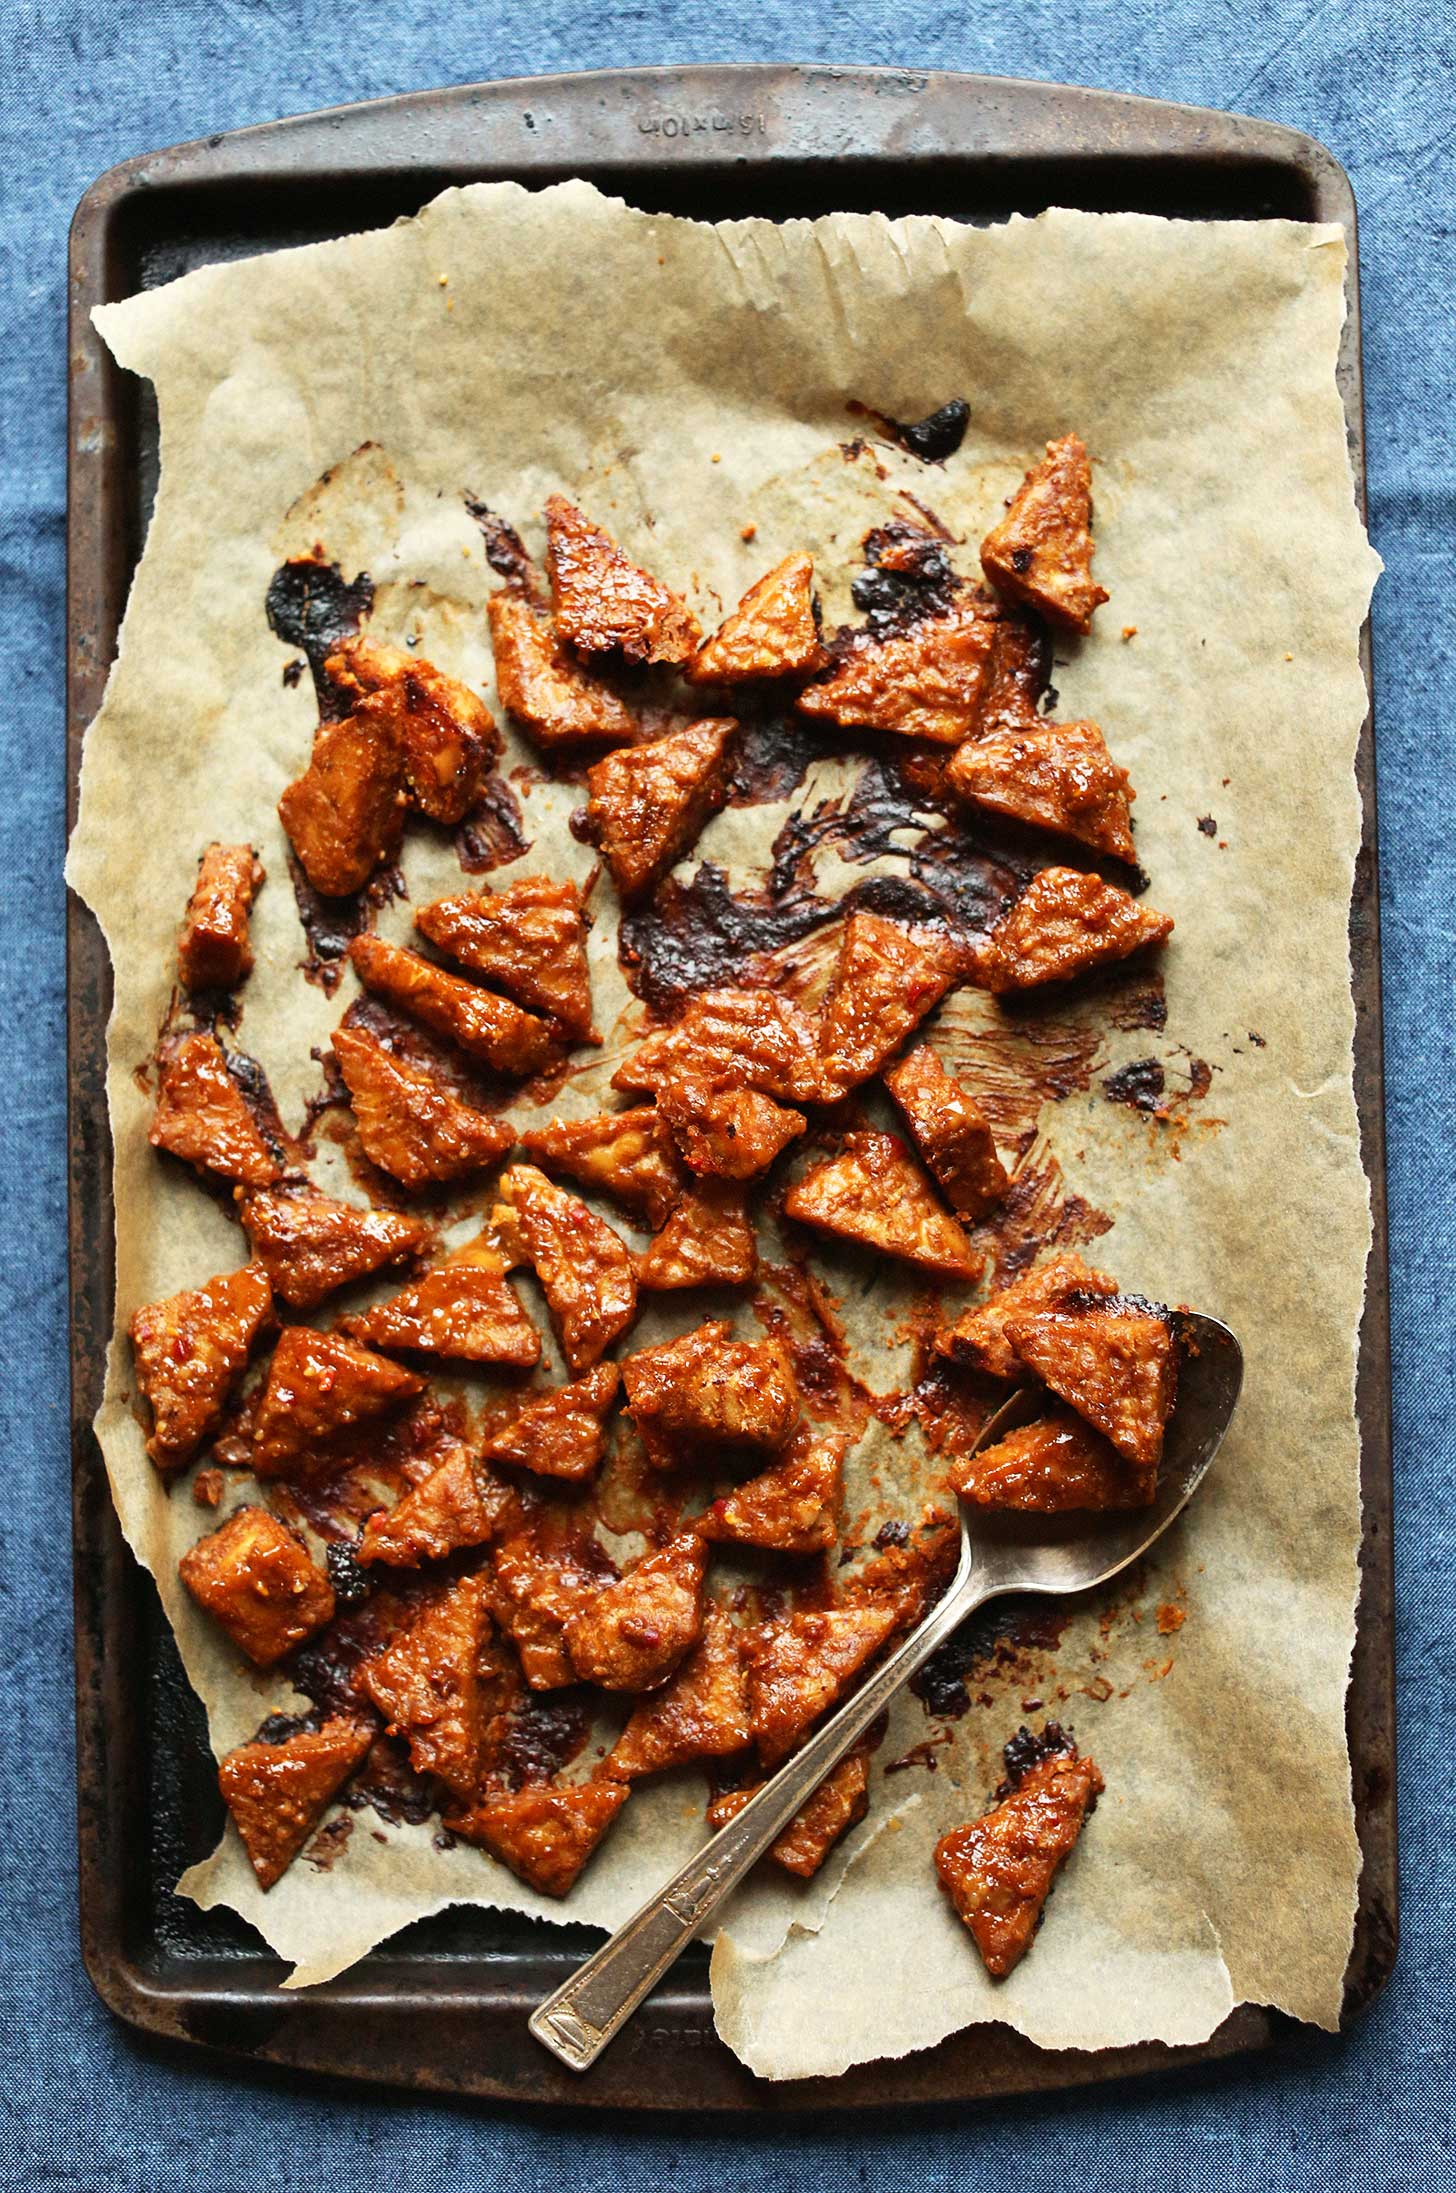 Parchment-lined baking sheet filled with our Marinated Peanut Baked Tempeh recipe